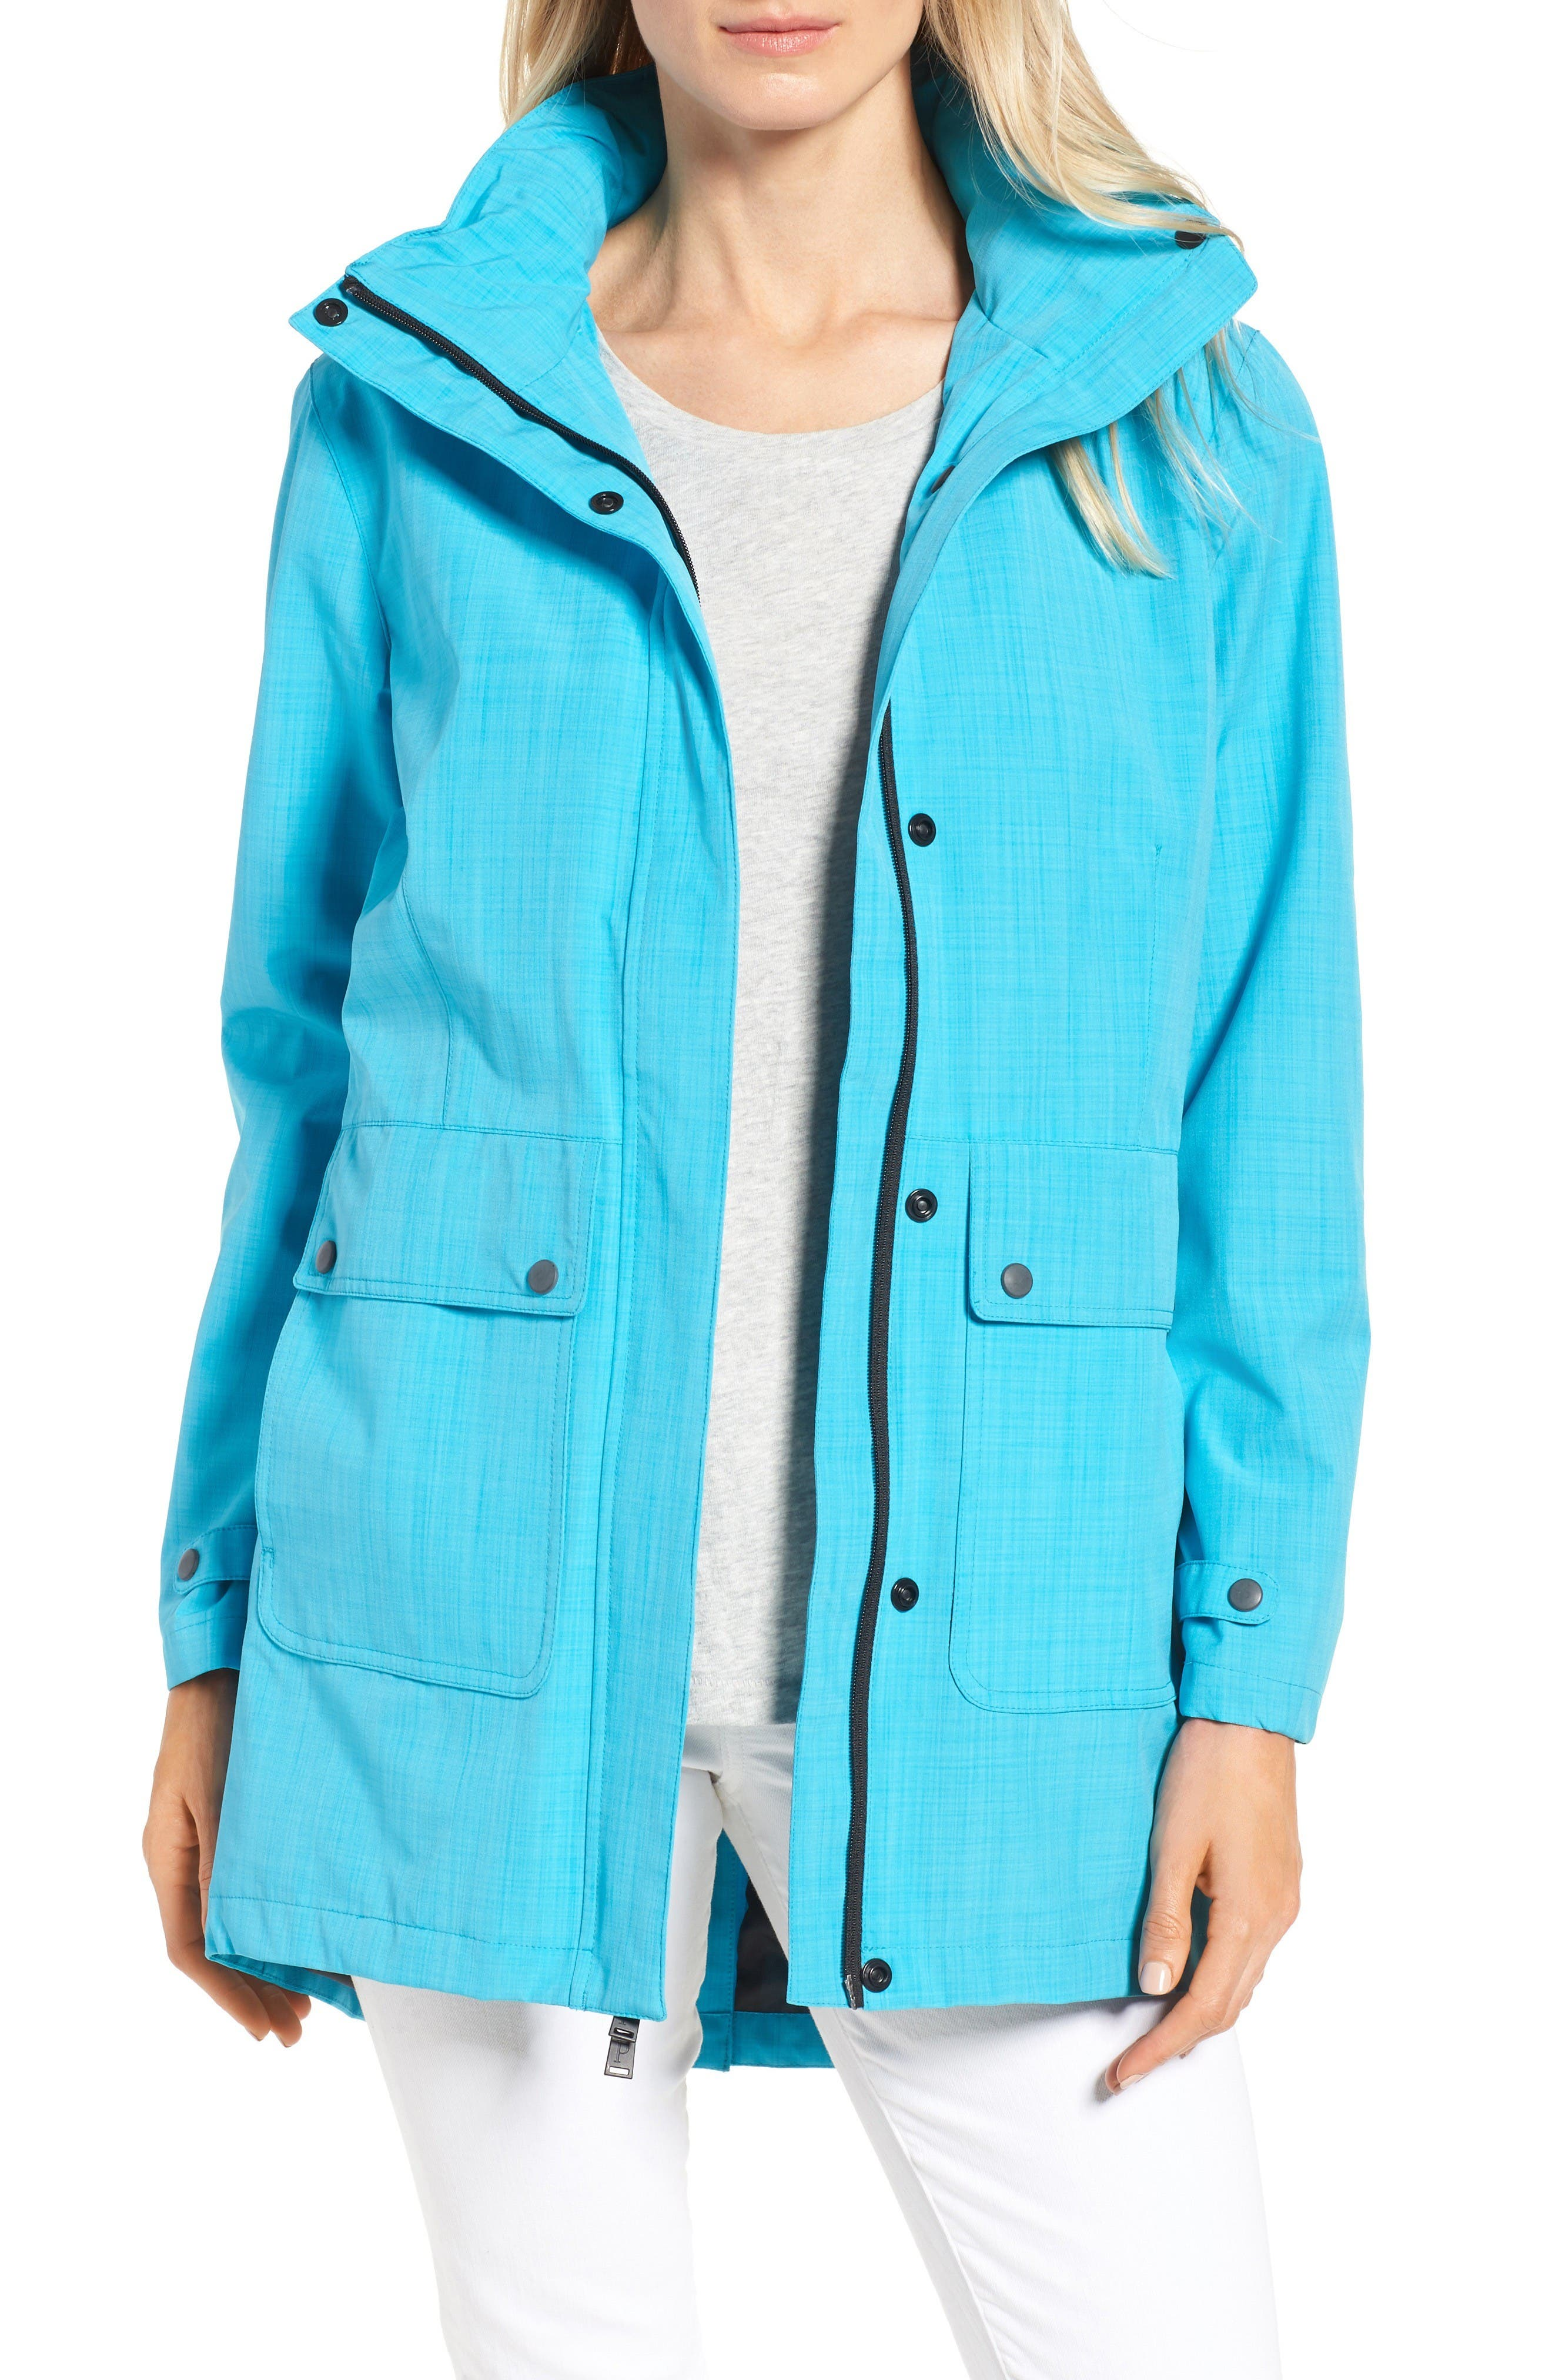 Golden Gate Anorak,                         Main,                         color, Turquoise